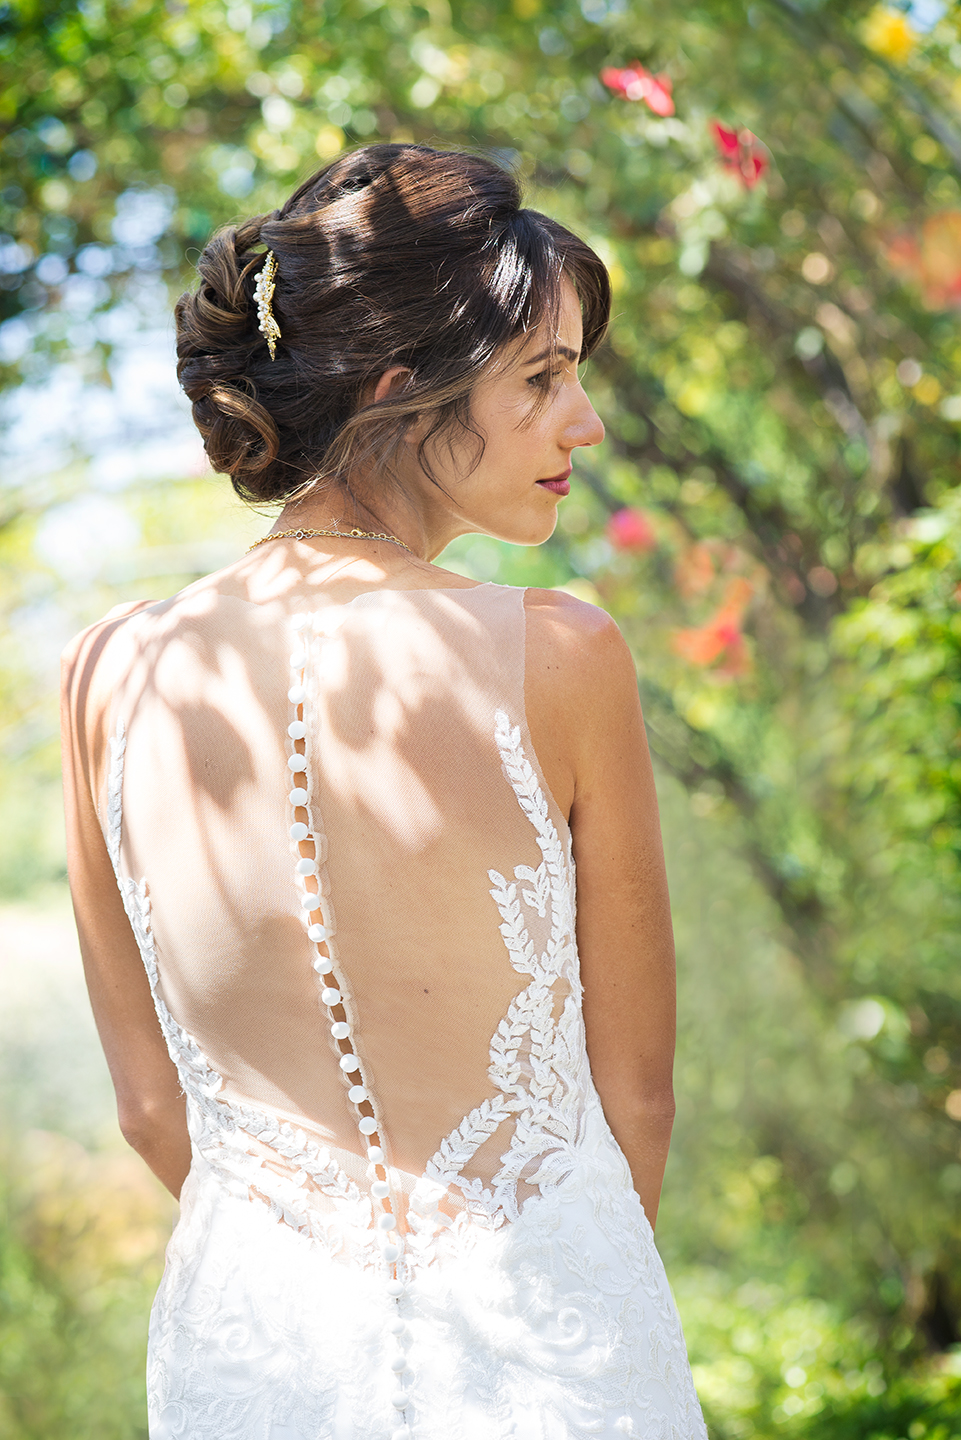 I loved the way the leaves made their own pattern on the back of her dress, mirroring the lace detail :)